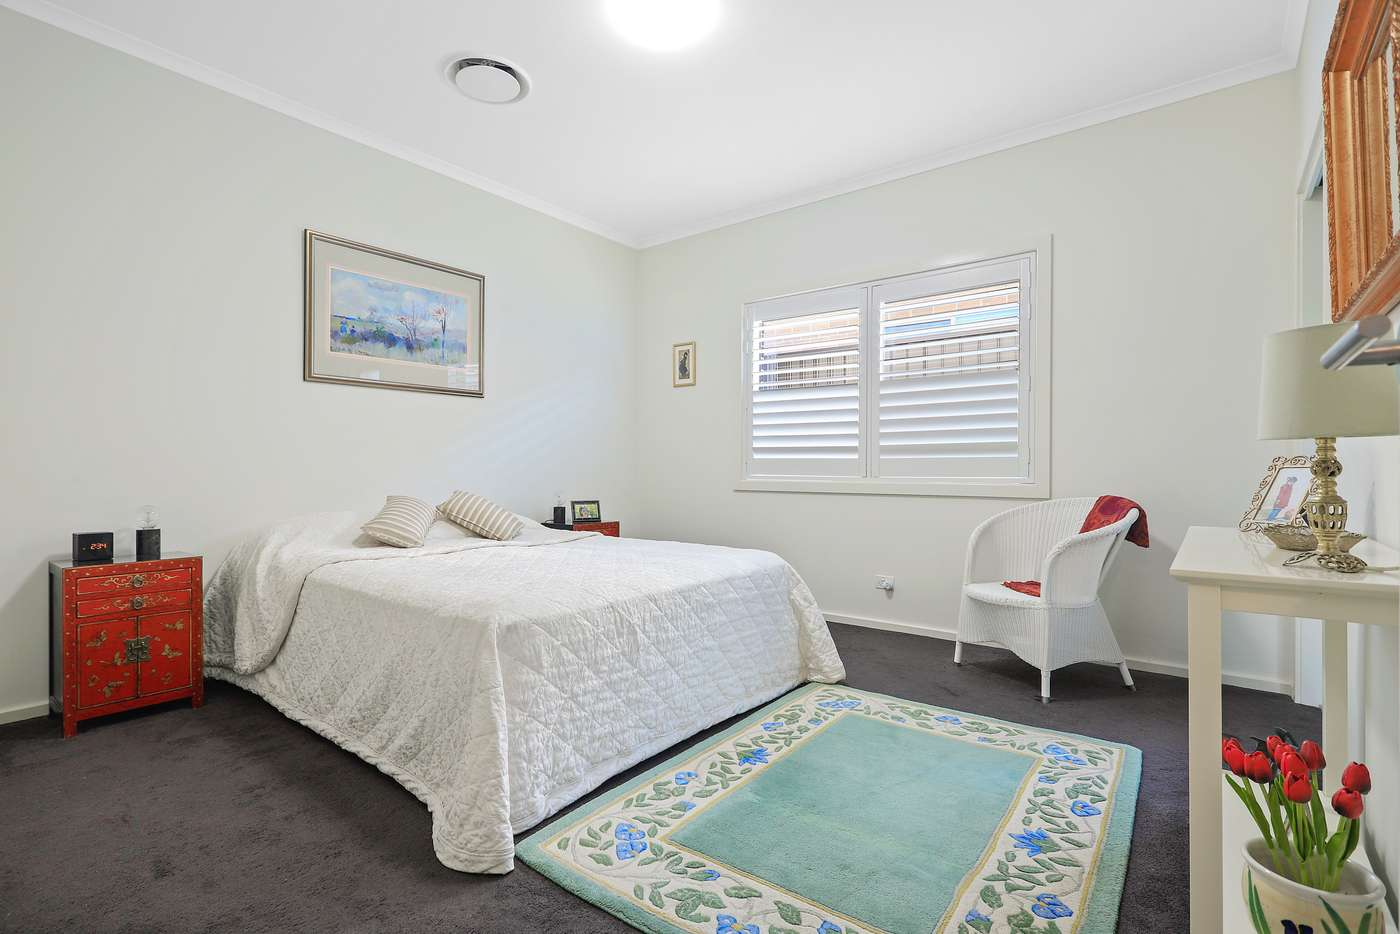 Sixth view of Homely house listing, 6 Trawler Street, Vincentia NSW 2540